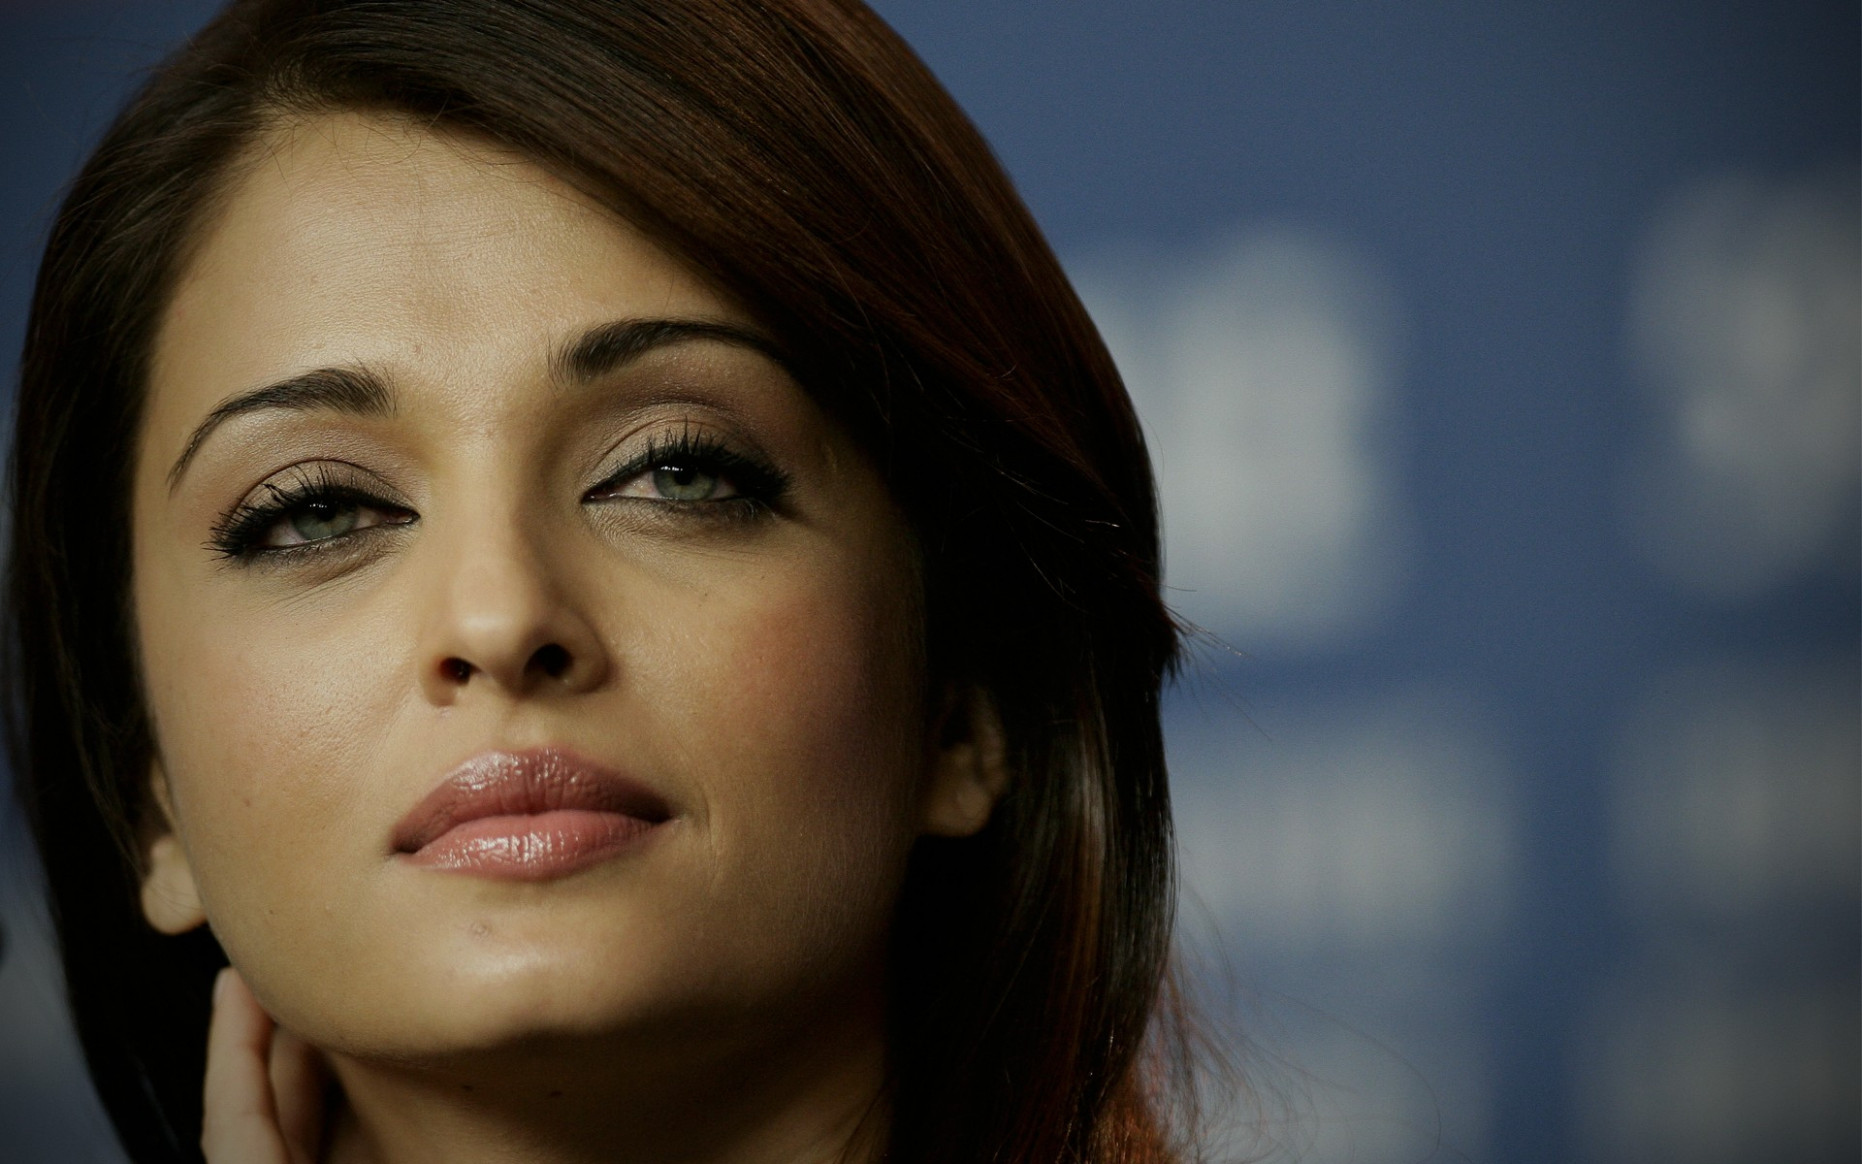 Aishwariya Rai full hd face wallpaper | Wallpapers and ..